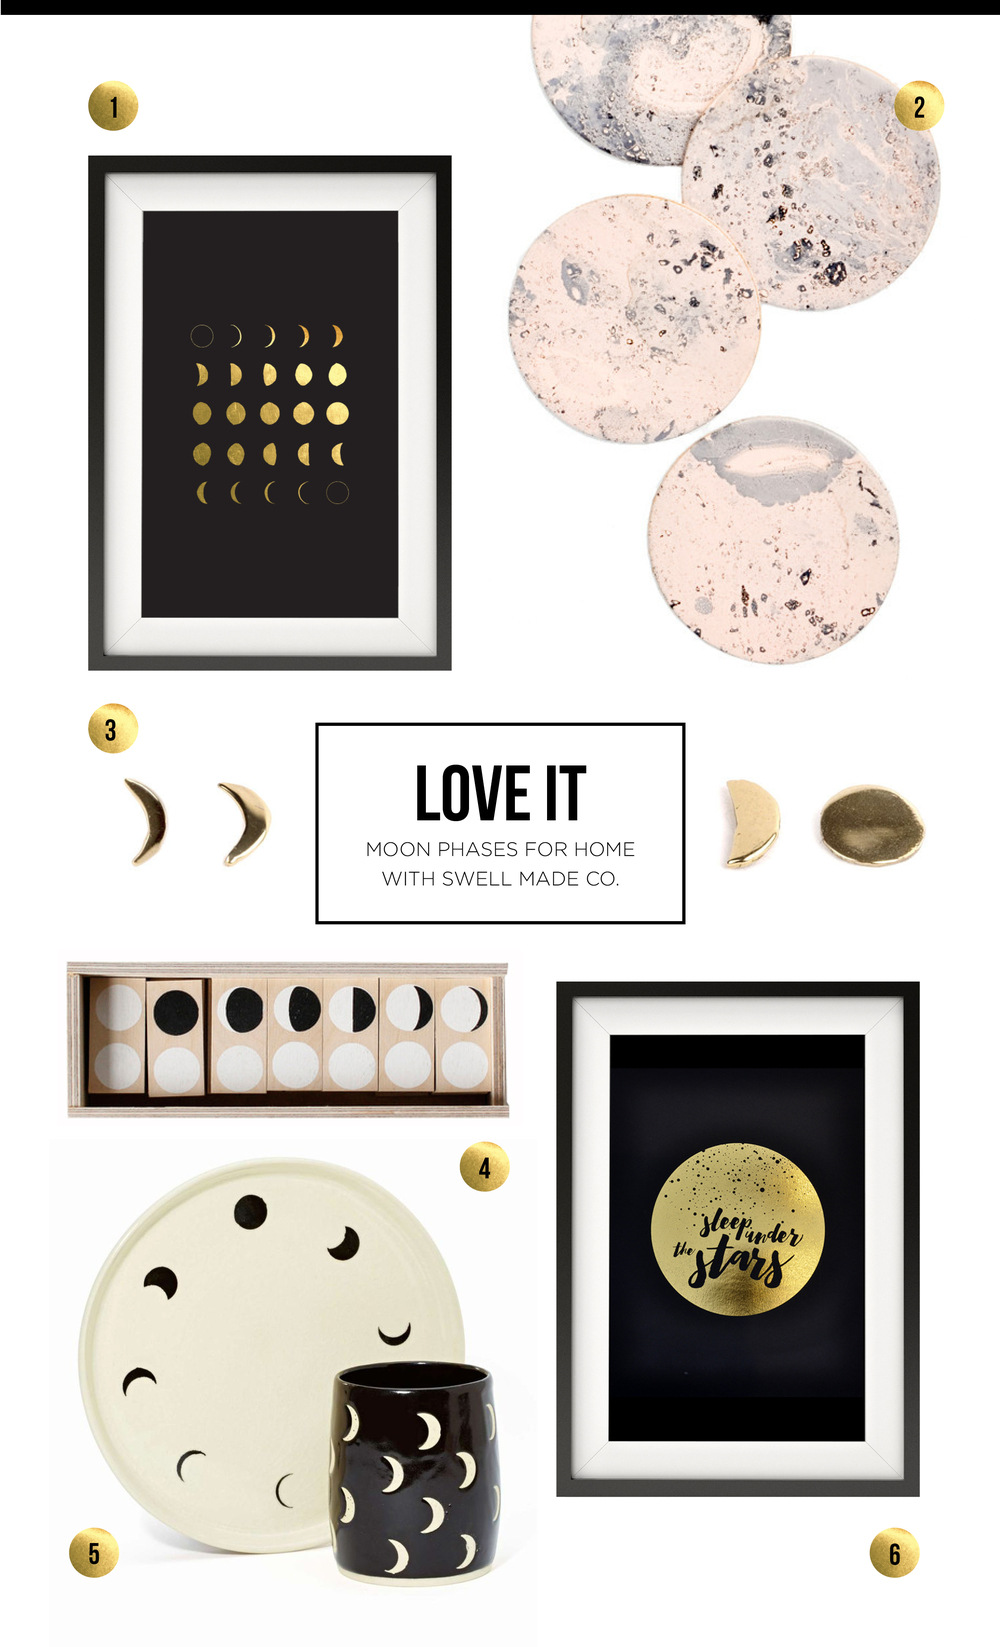 swellmadeco-moonphases-loveit.jpg